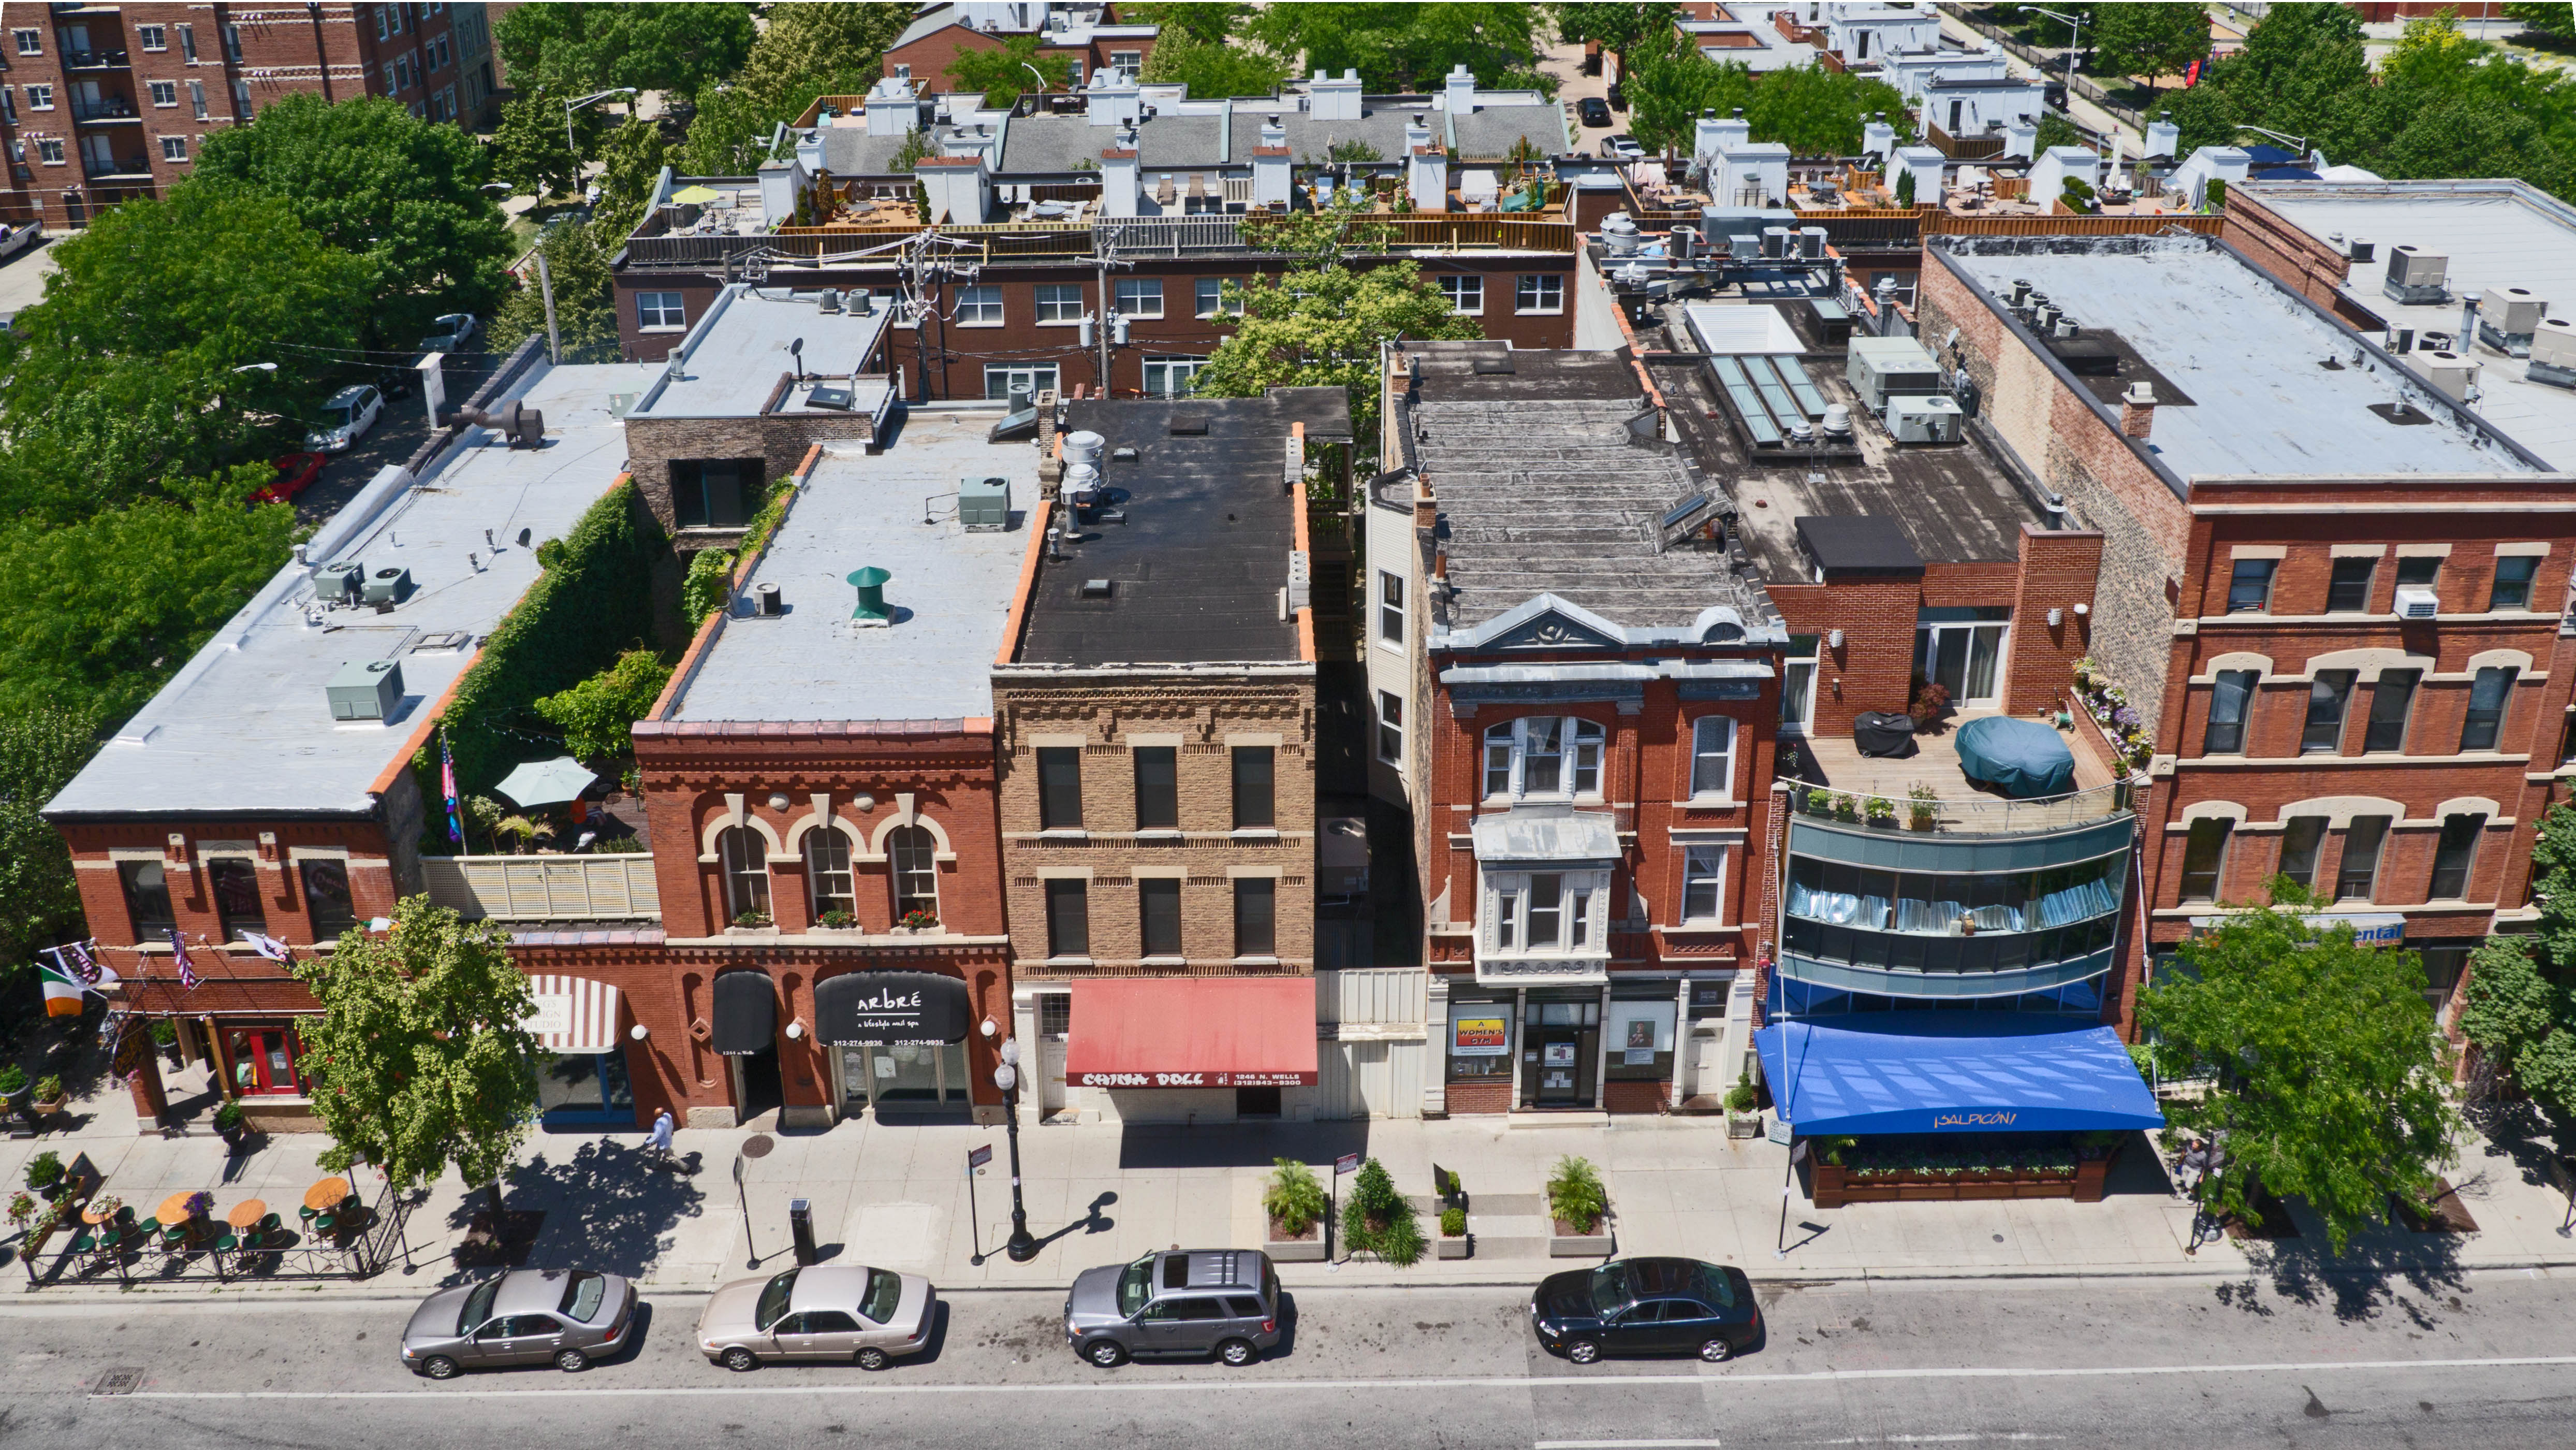 3 Bedroom Apartments Rent Luxury Old Town Apartments On Wonderful Wells Street